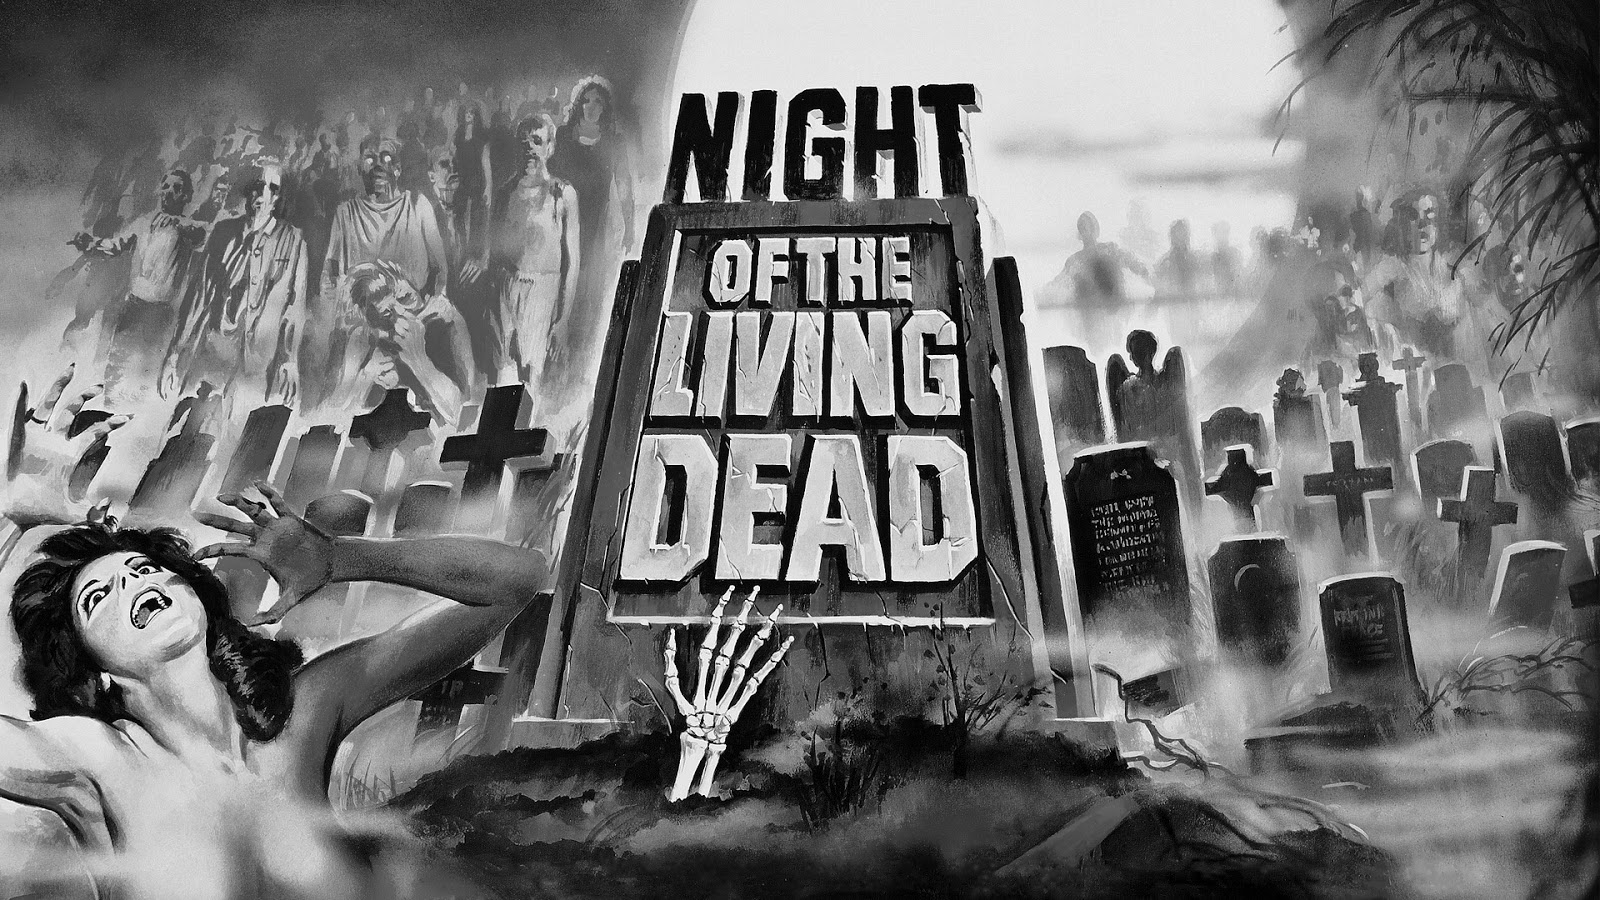 Night+of+the+Living+Dead+Wallpaper+02b